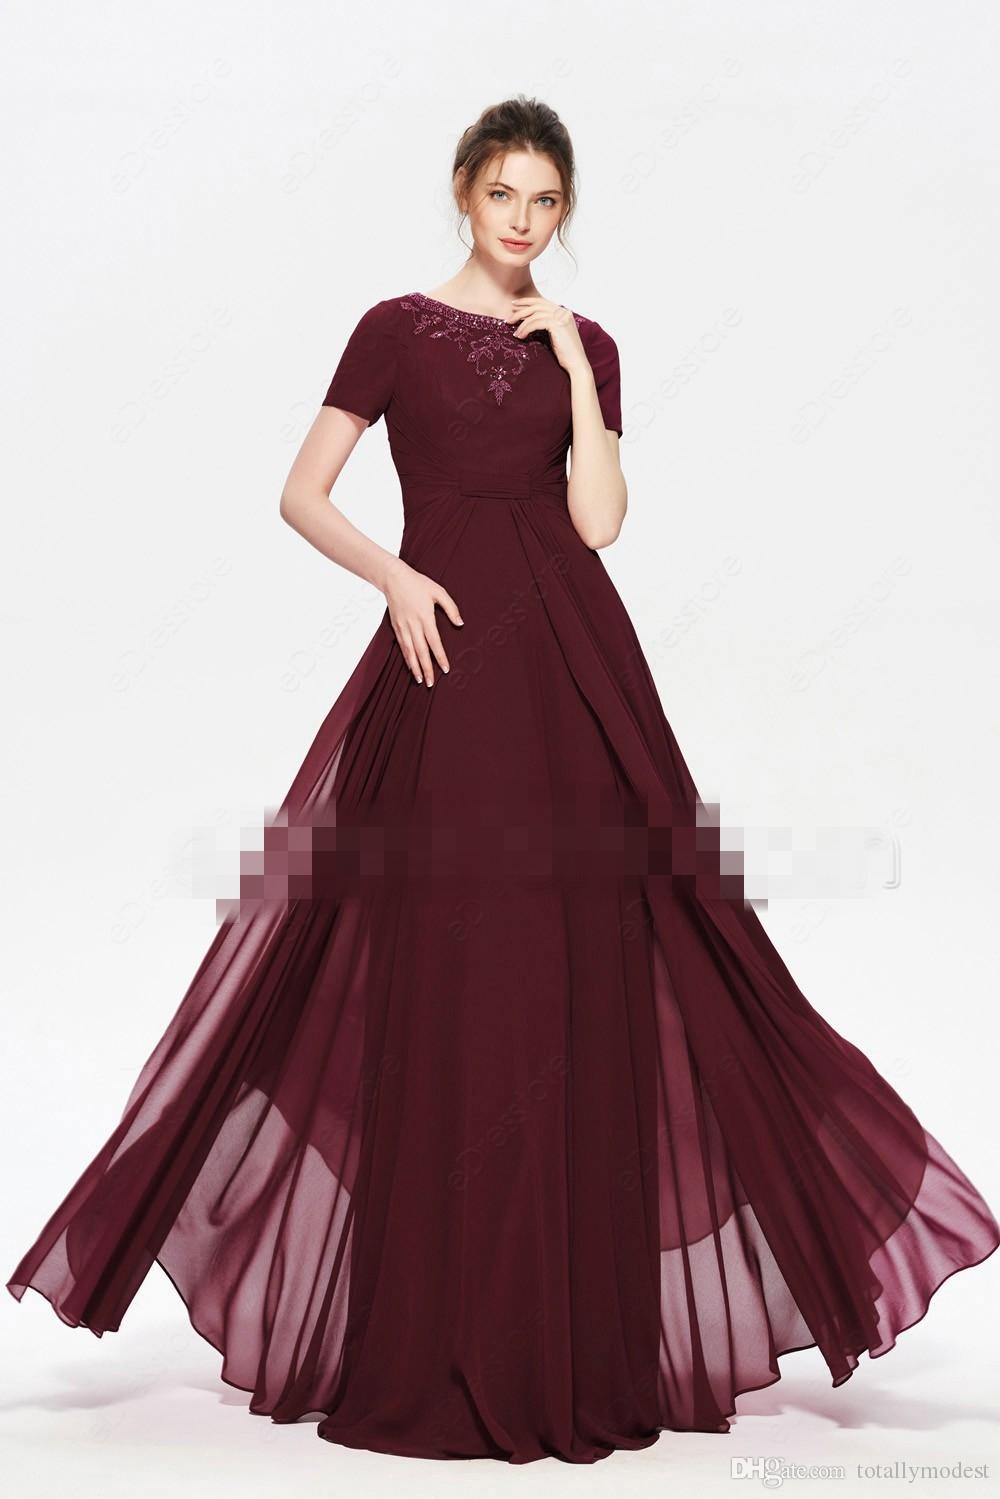 2bbf8b20257 Burgundy Beaded Modest Long Bridesmaid Dresses With Sleeves Jewel Neck A  Line Floor Length Women Modest Maids Of Honor Dress Royal Blue Bridesmaid  Dresses ...